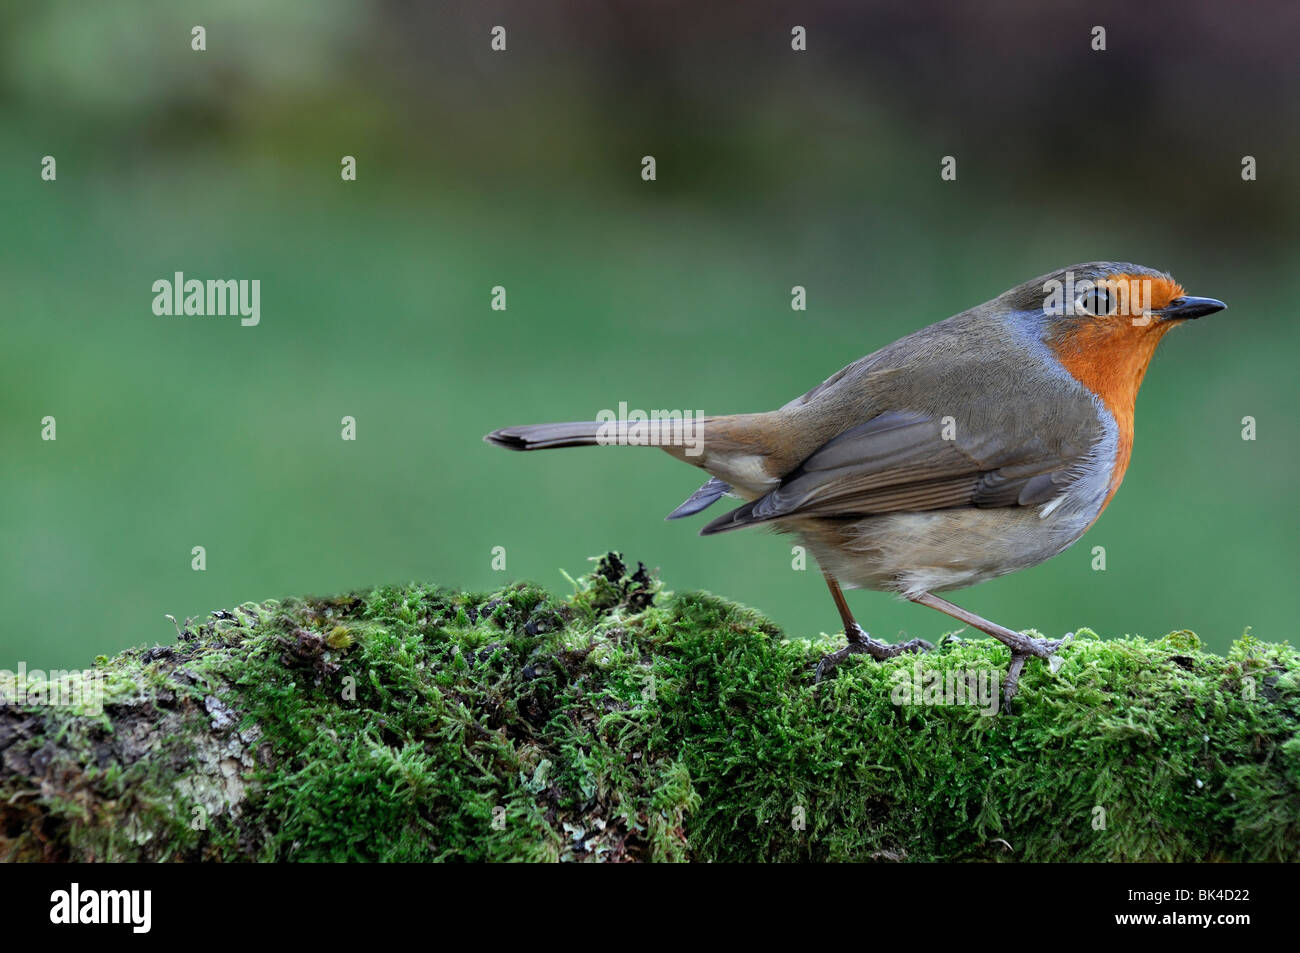 Erithacus Rubecula robin redbreast bird standing perched perch looking moss lichen cover covered branch garden cautious - Stock Image